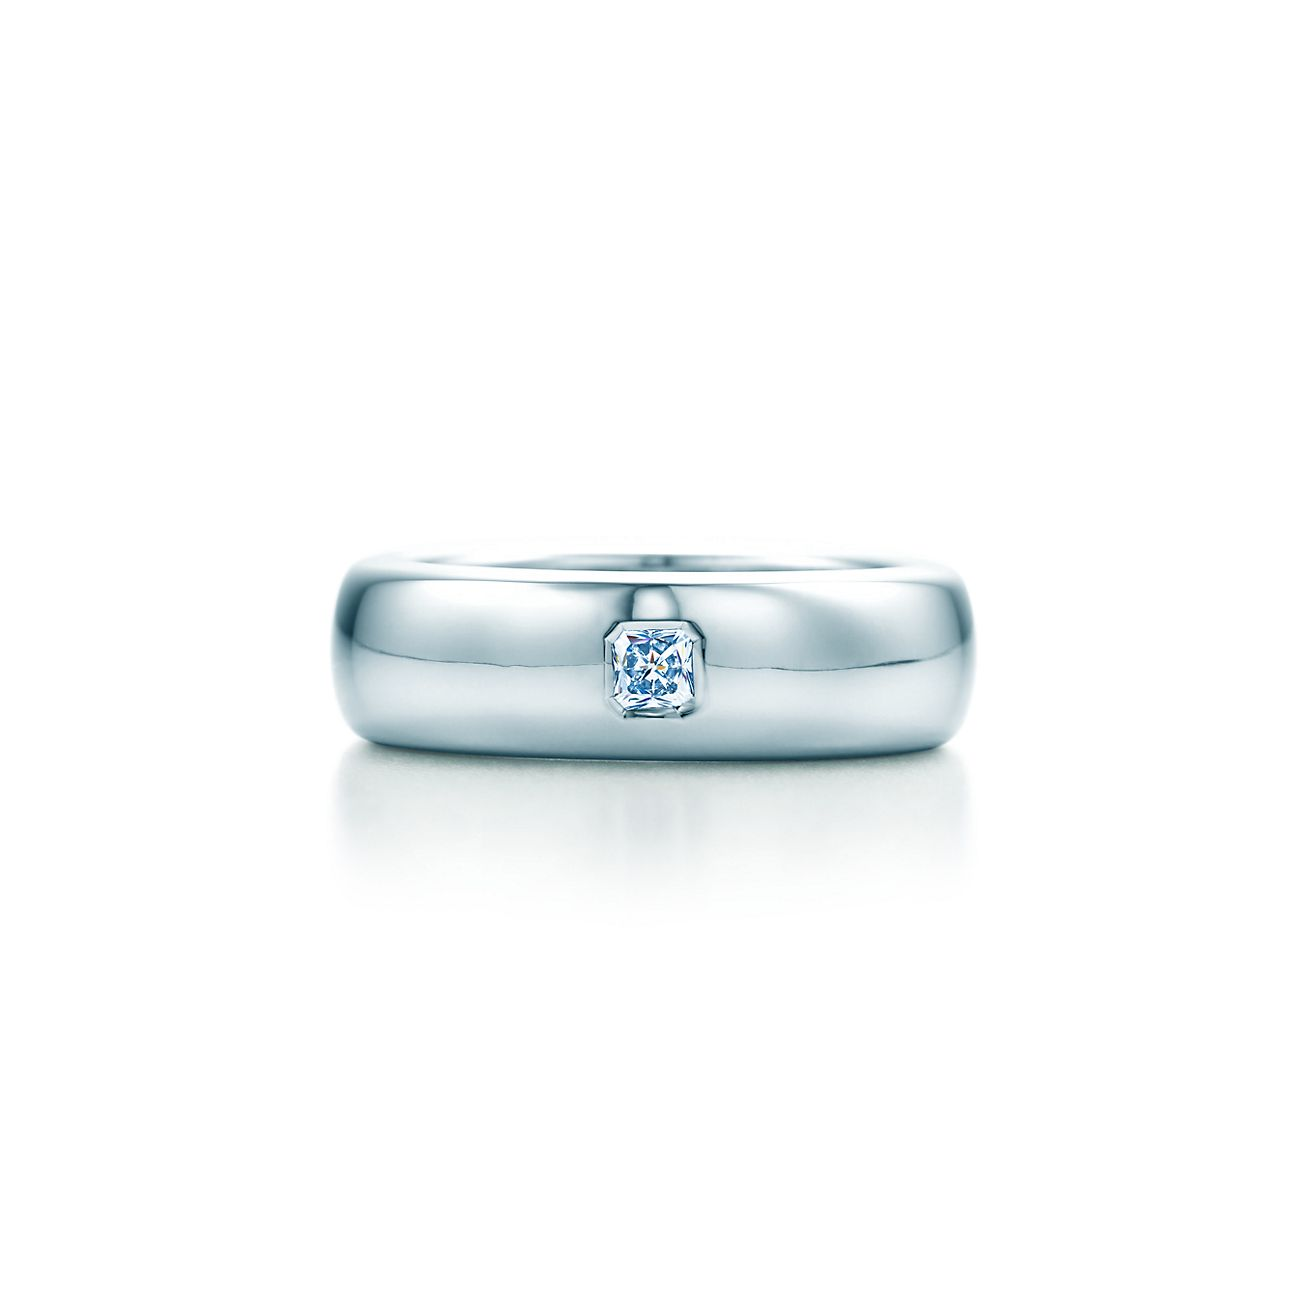 tiffany classicwedding band ring - Tiffany Wedding Ring